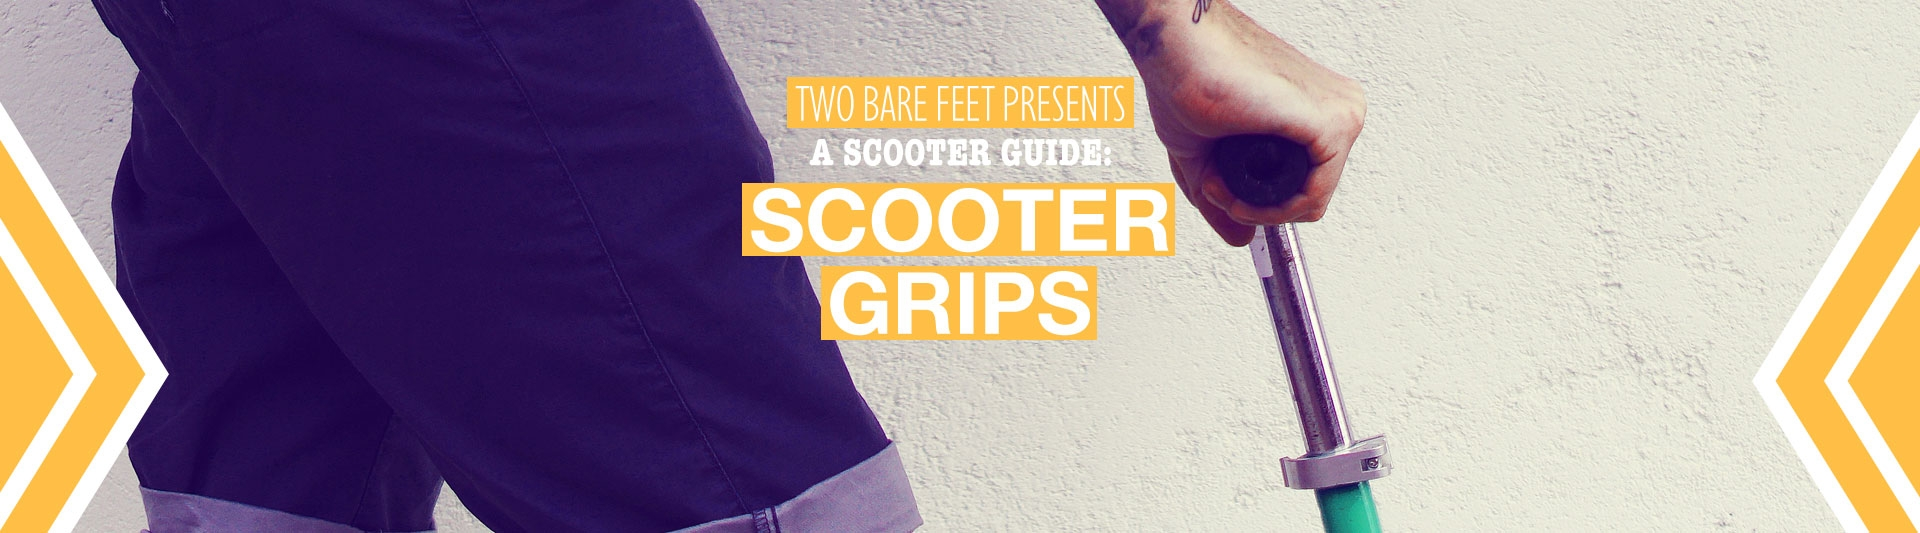 Scooter Grips banner